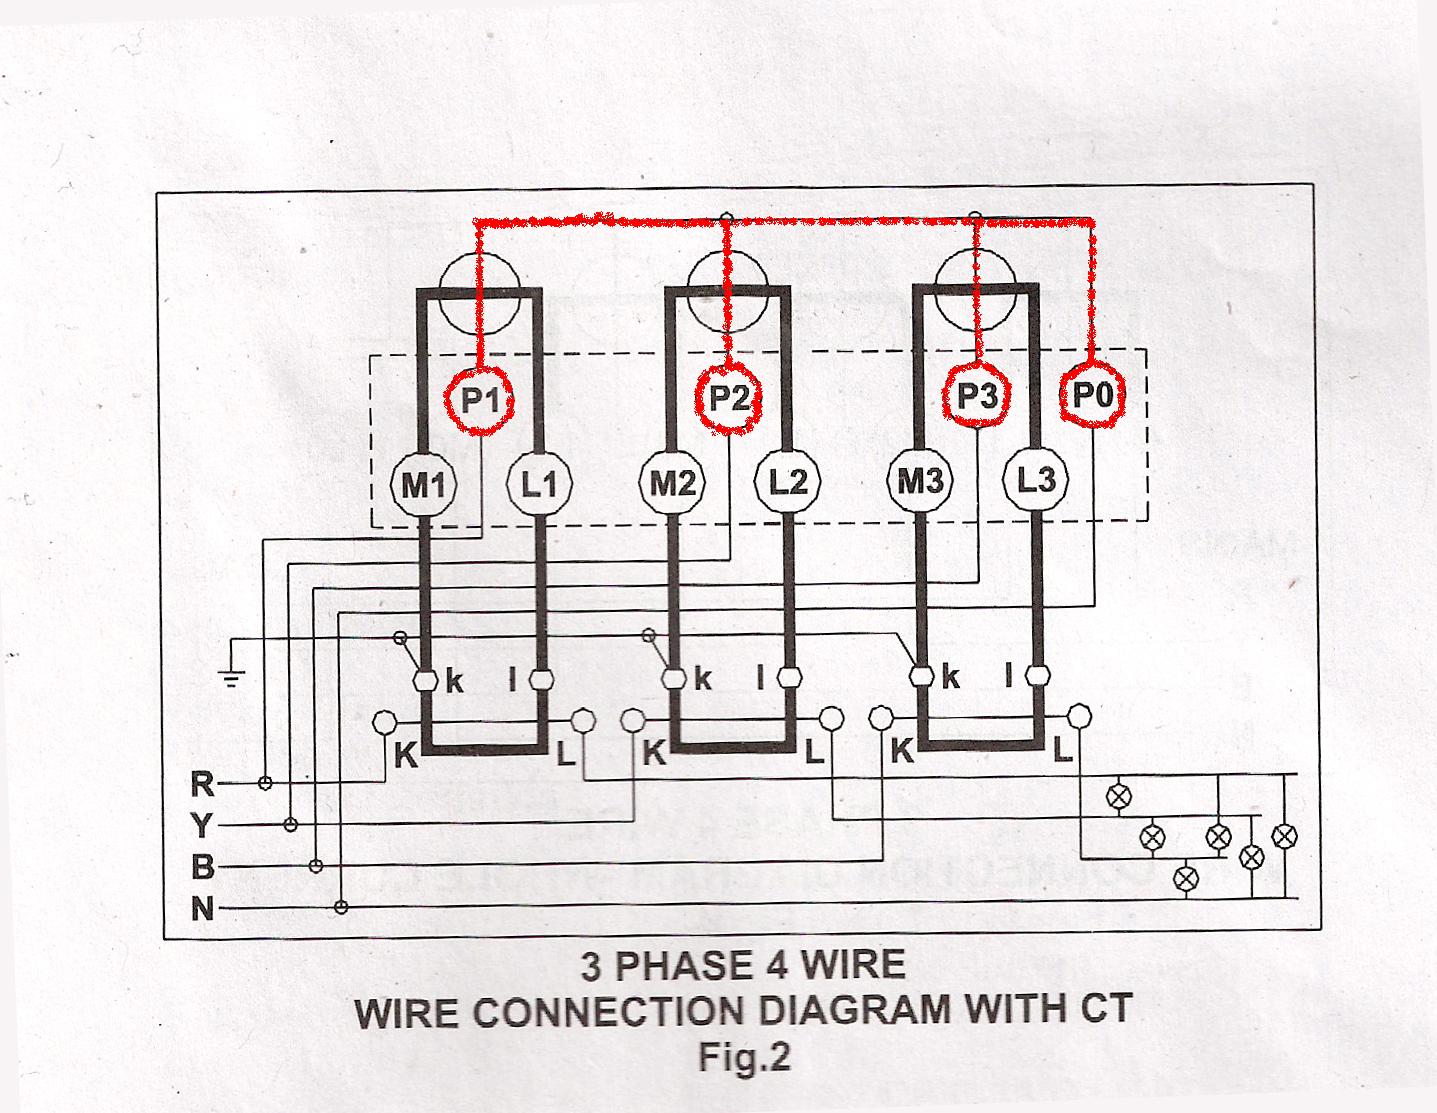 3 Phase 4 Wire Connection For L Amp T Whole Current Meter